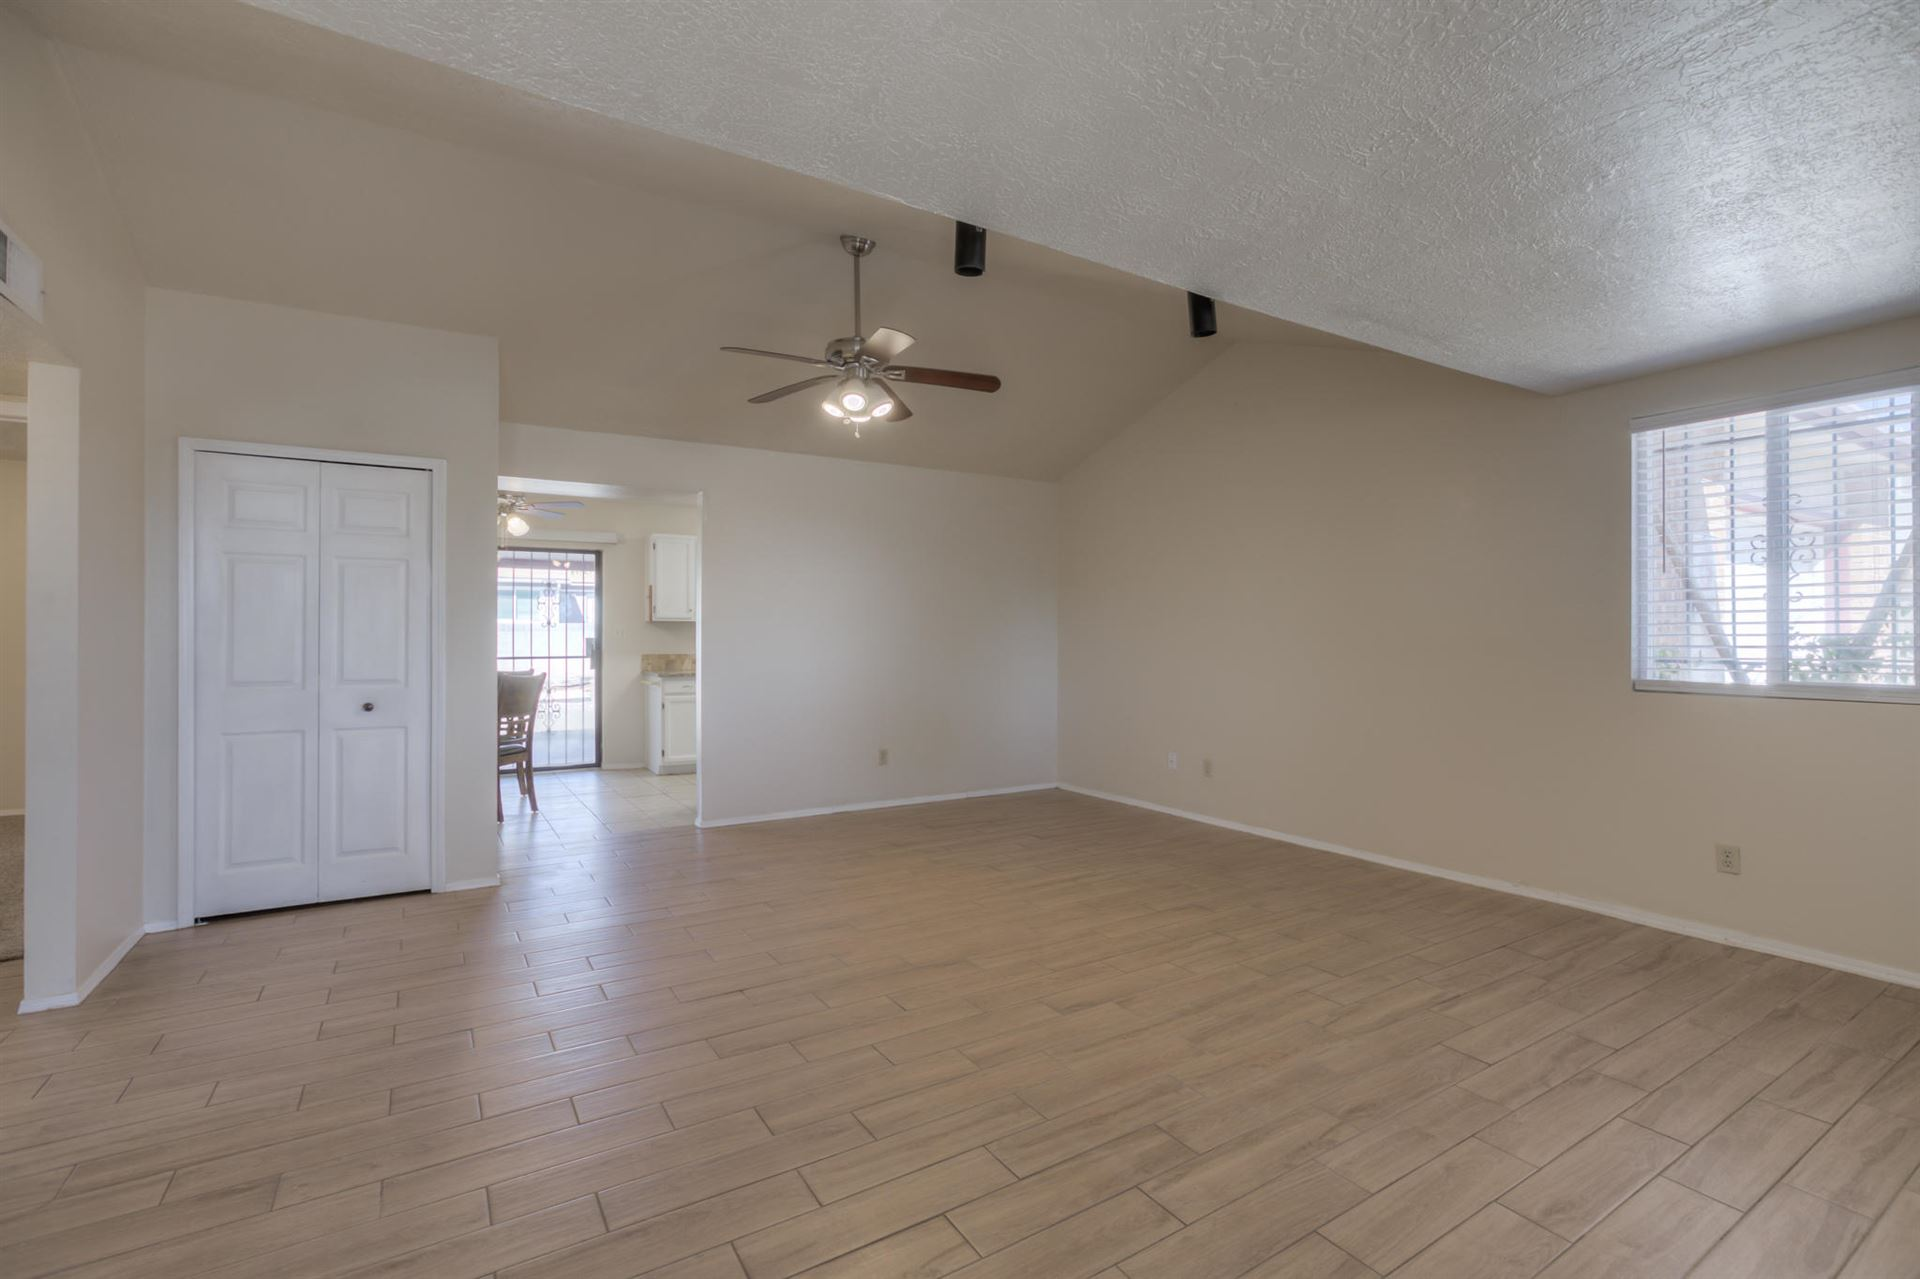 Photo of 328 PECOS Loop SE, Rio Rancho, NM 87124 (MLS # 978275)